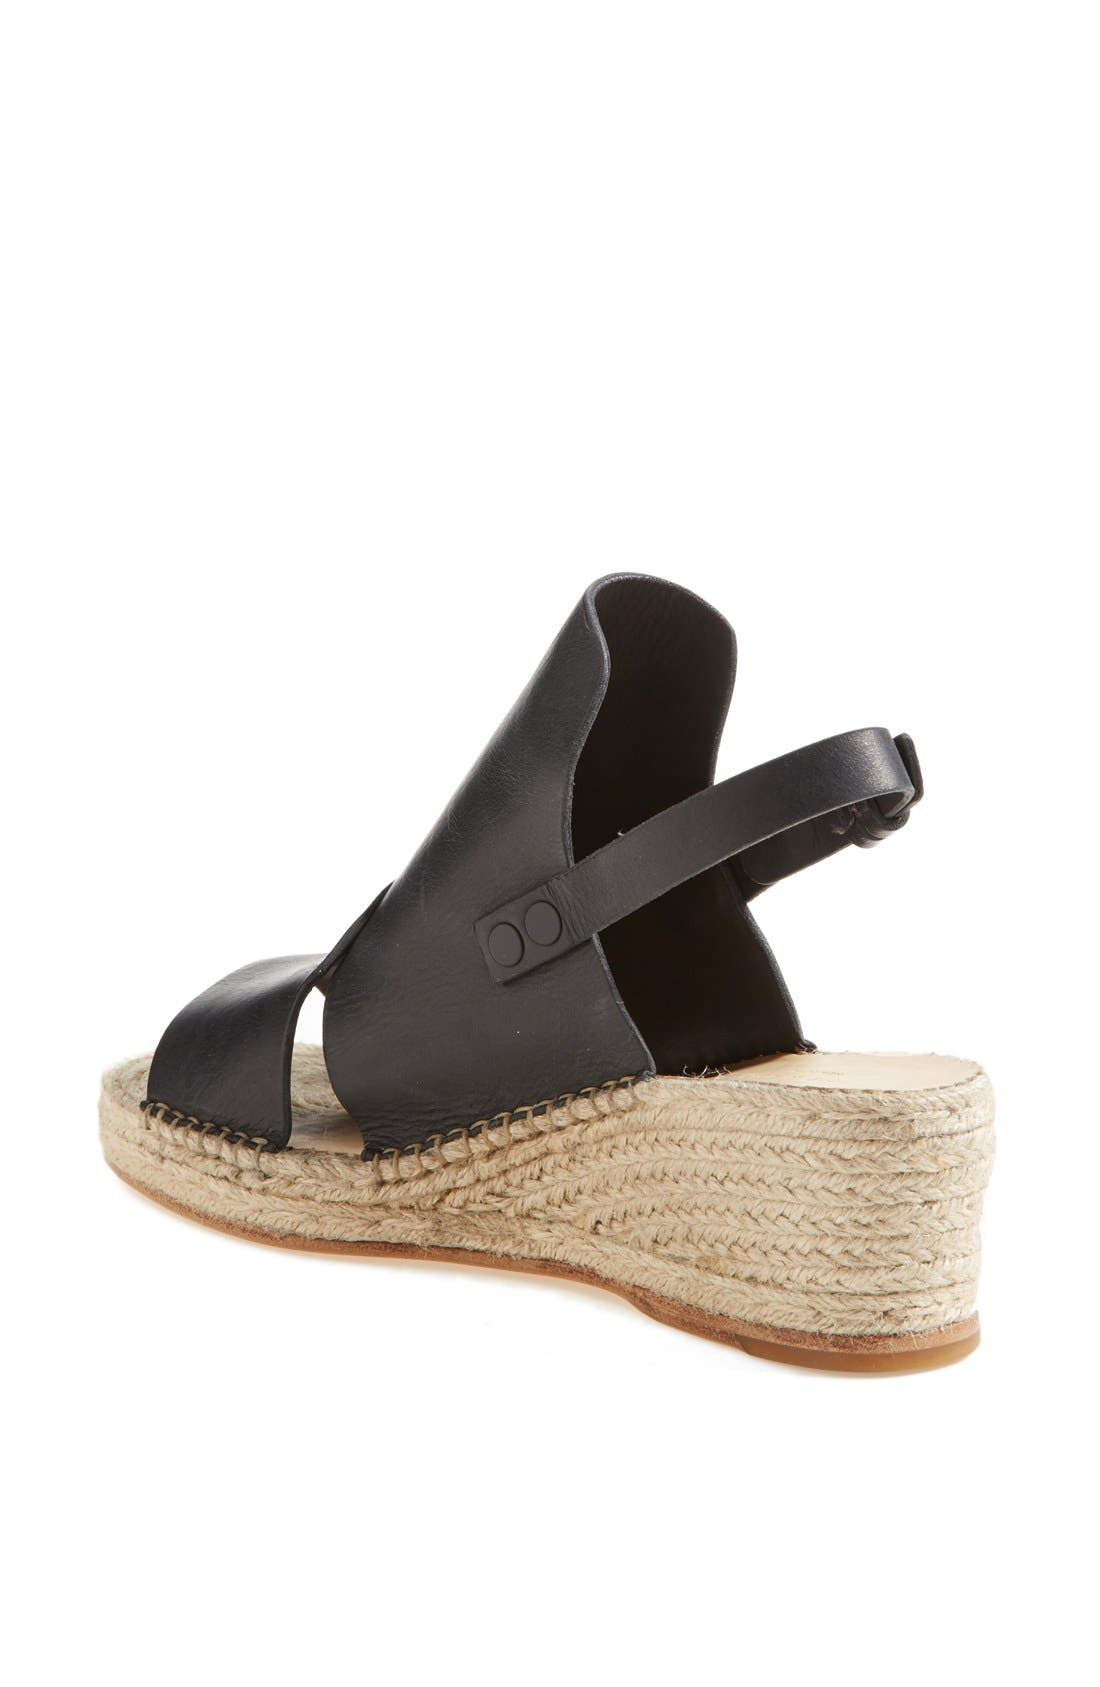 Alternate Image 2  - rag & bone 'Sayre II' Espadrille Wedge Sandal